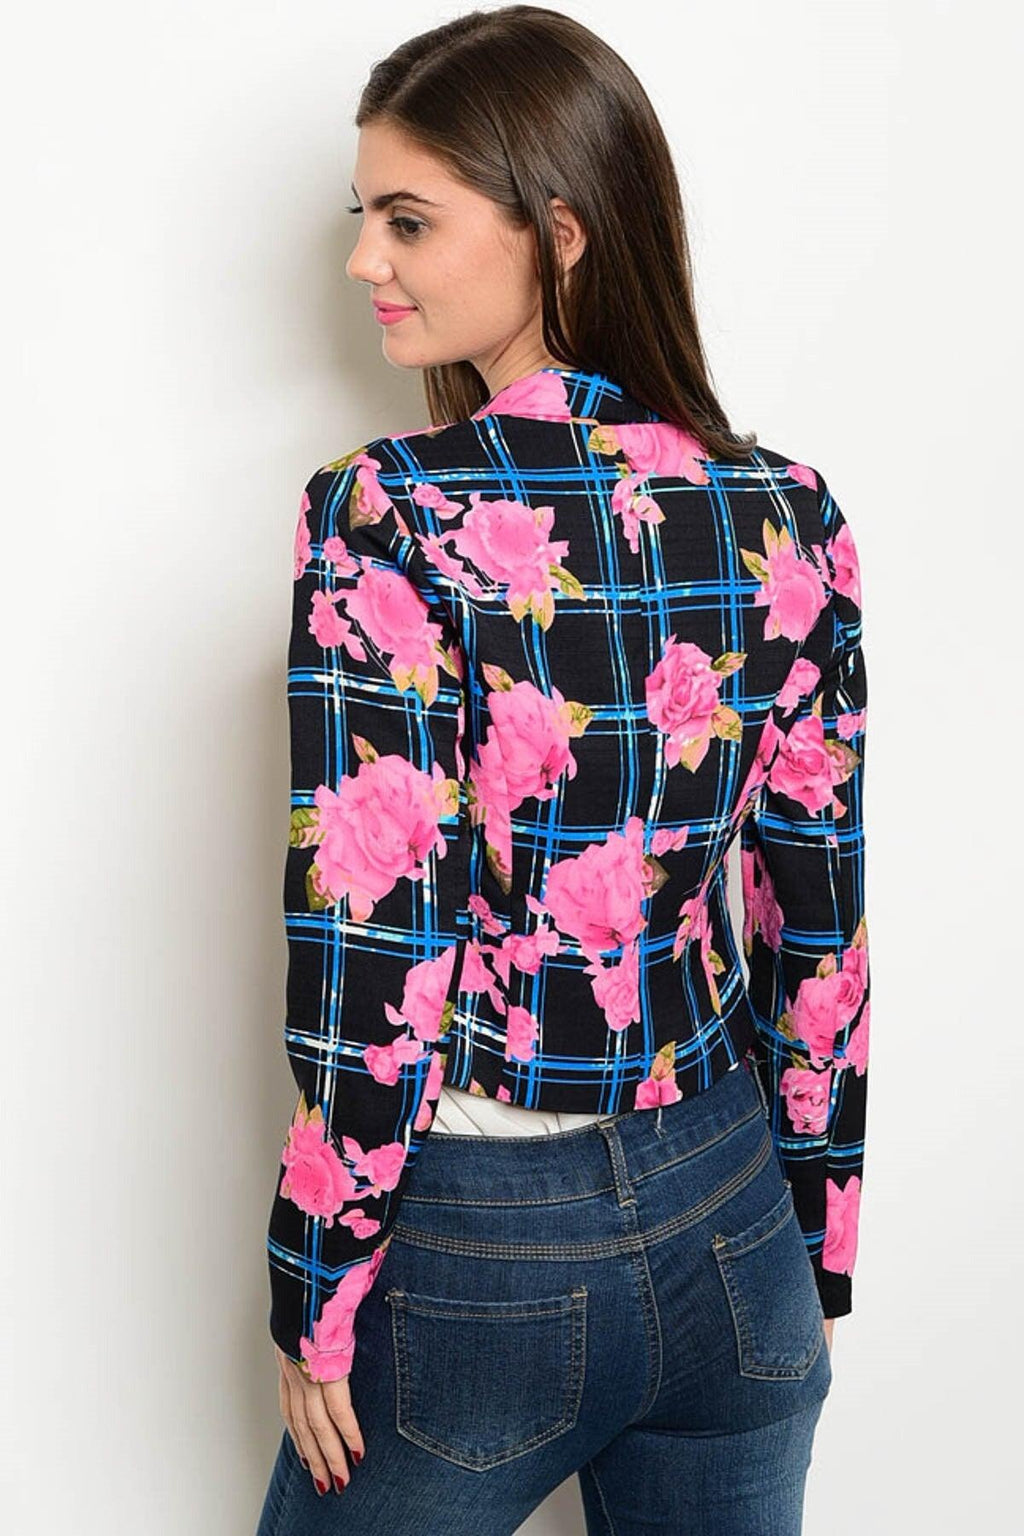 Hot Pink Floral Print Blazer - My Royal Closet